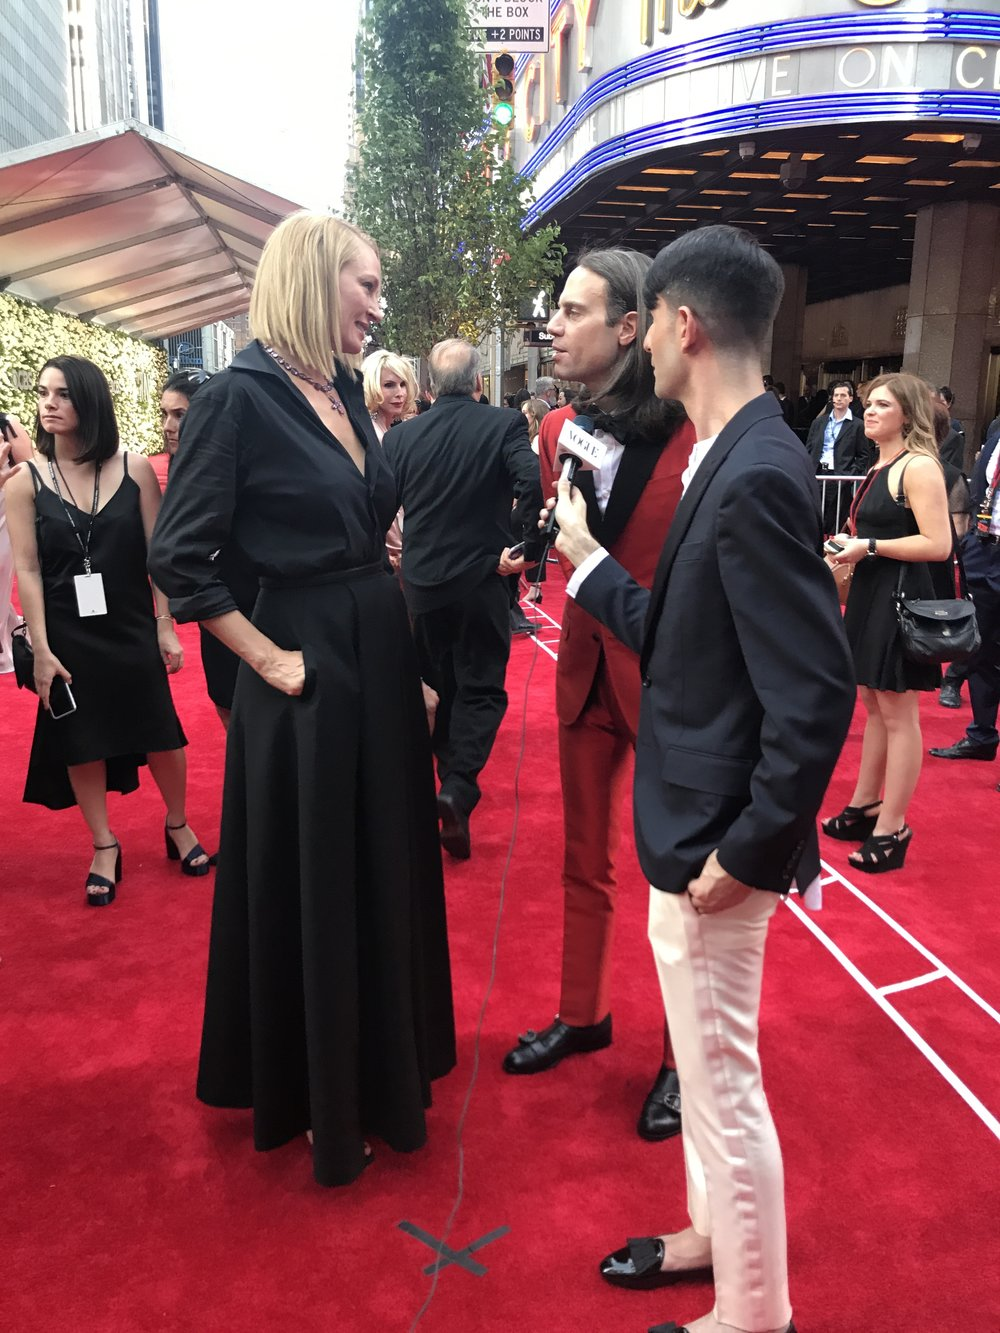 Tony Awards Presenter Uma Thurman talks to Broadway producer and style icon Jordan Roth and Vogue.com's Style Editor Edward Barsamian.